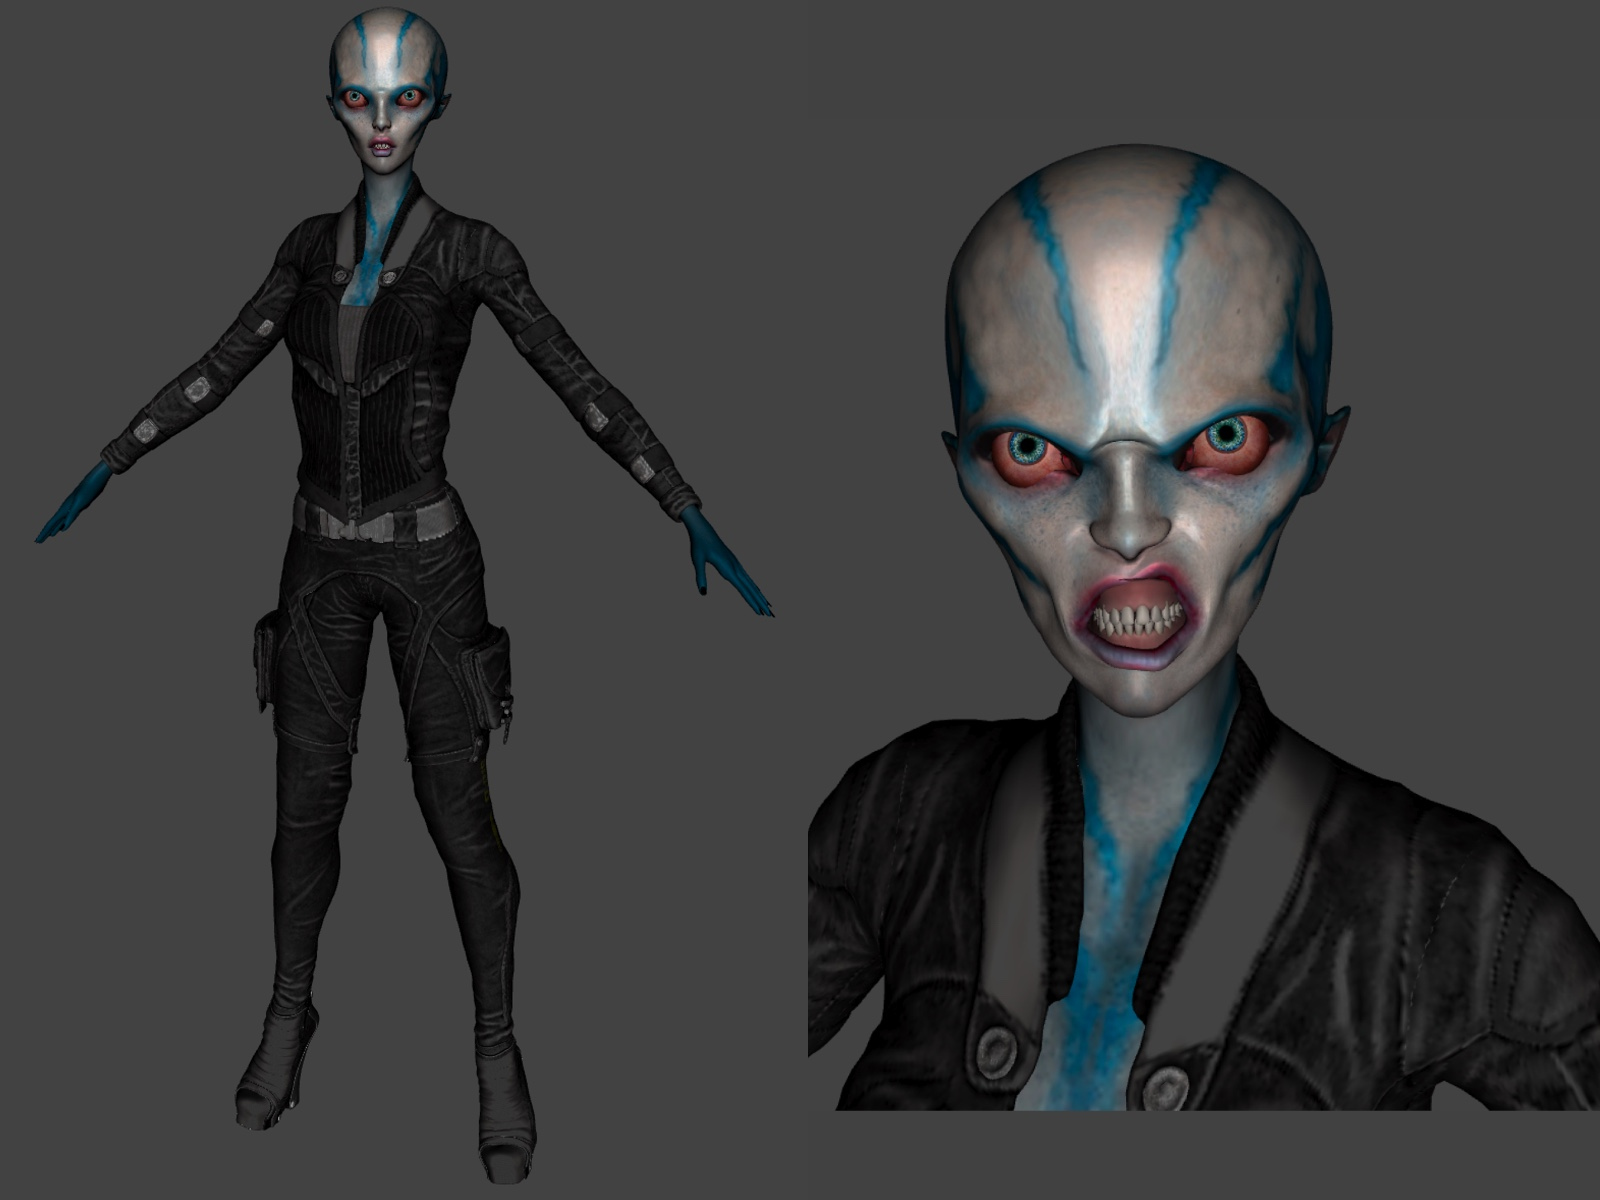 3D Character Design at Kingdom App Development Alien Warrior